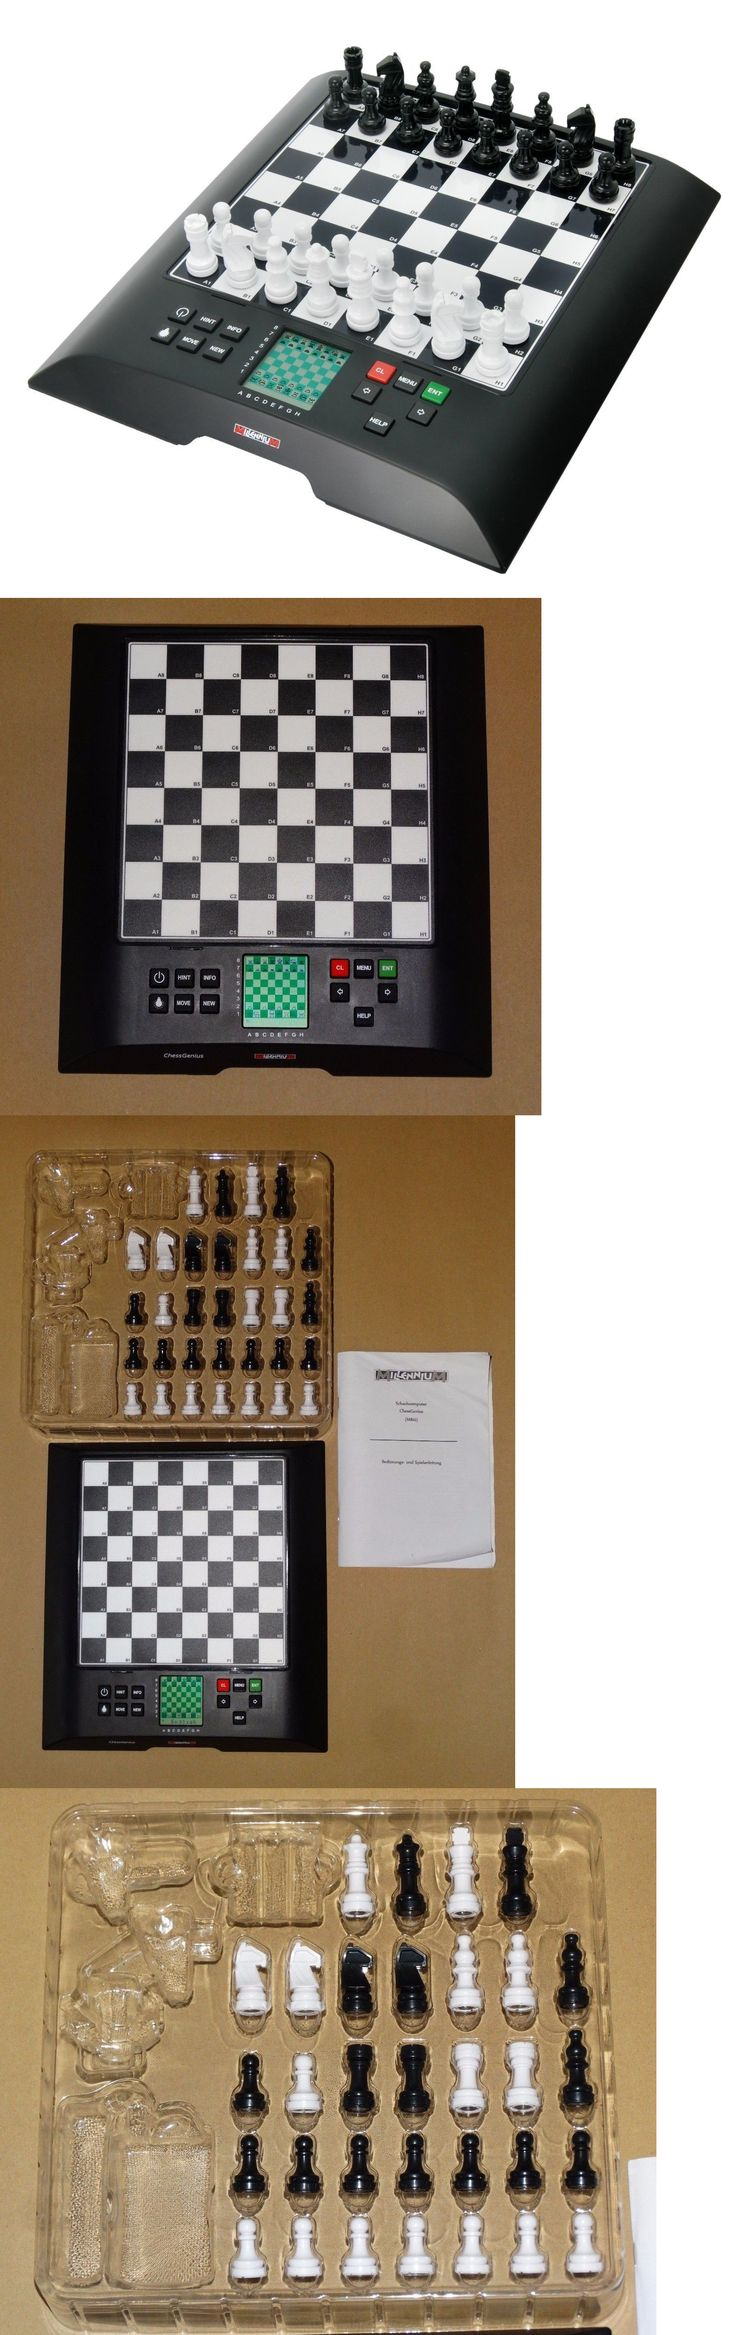 Electronic Chess 155339: New!!! Millenium Chessgenius Electronic Chess Computer M810 2000 Gmbh -> BUY IT NOW ONLY: $119 on eBay!